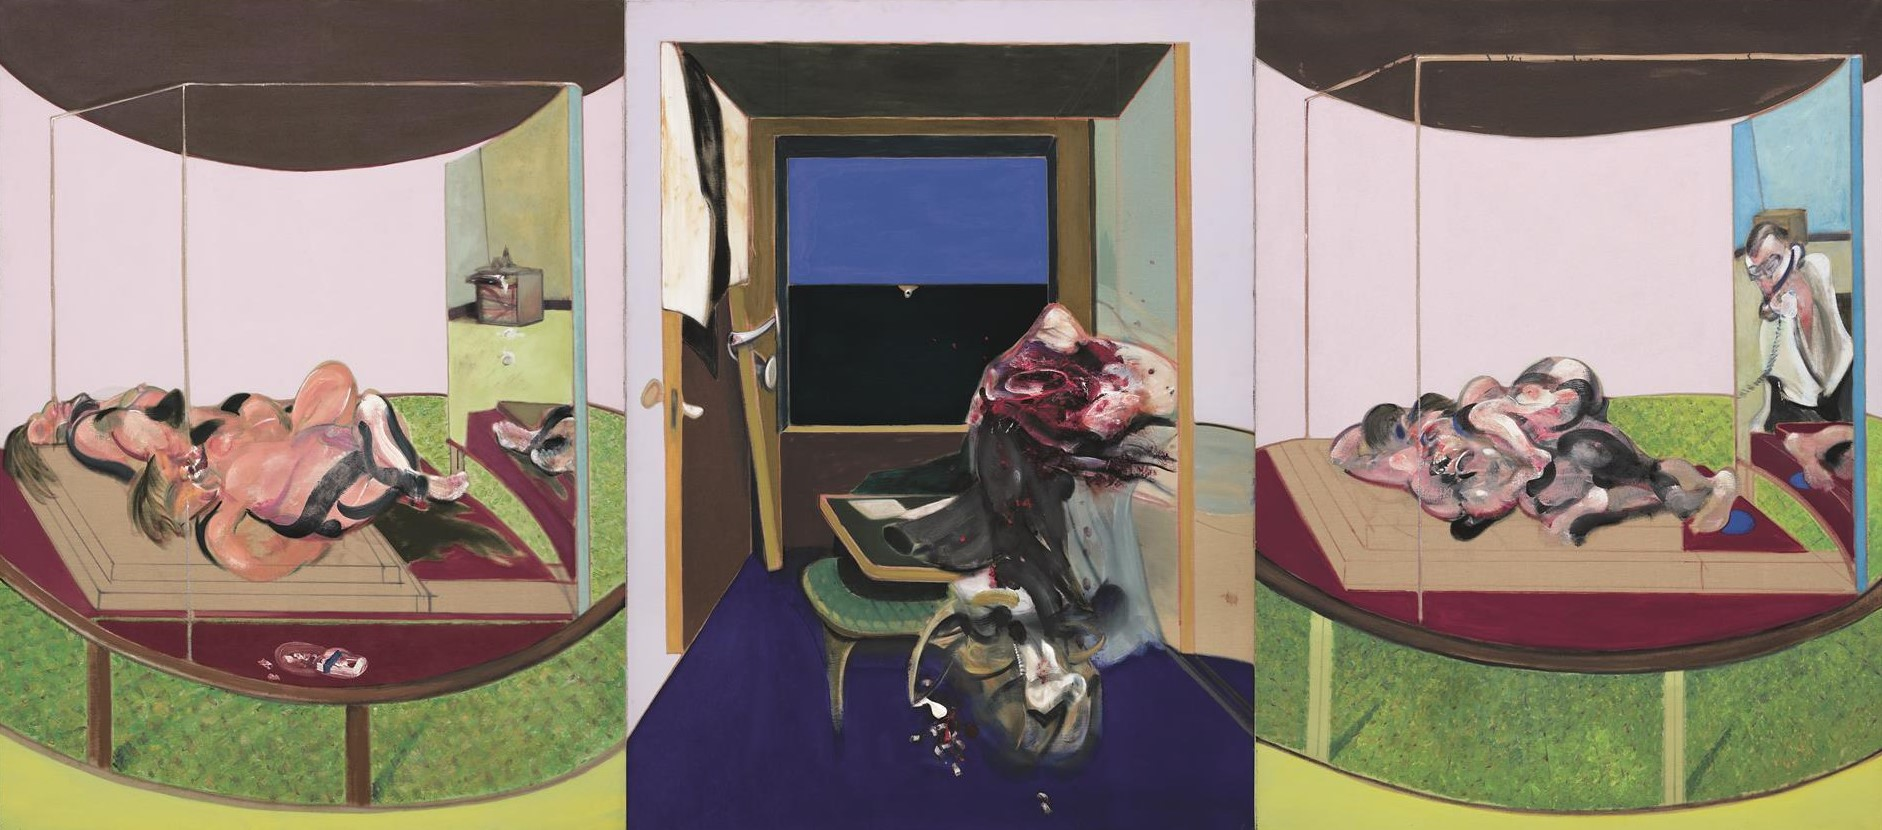 Francis Bacon, Triptych inspired by T.S Eliot's poem, Sweeney Agoniste, 1967. © The Estate of Francis Bacon /All rights reserved / Adagp, Paris and DACS, London 2019